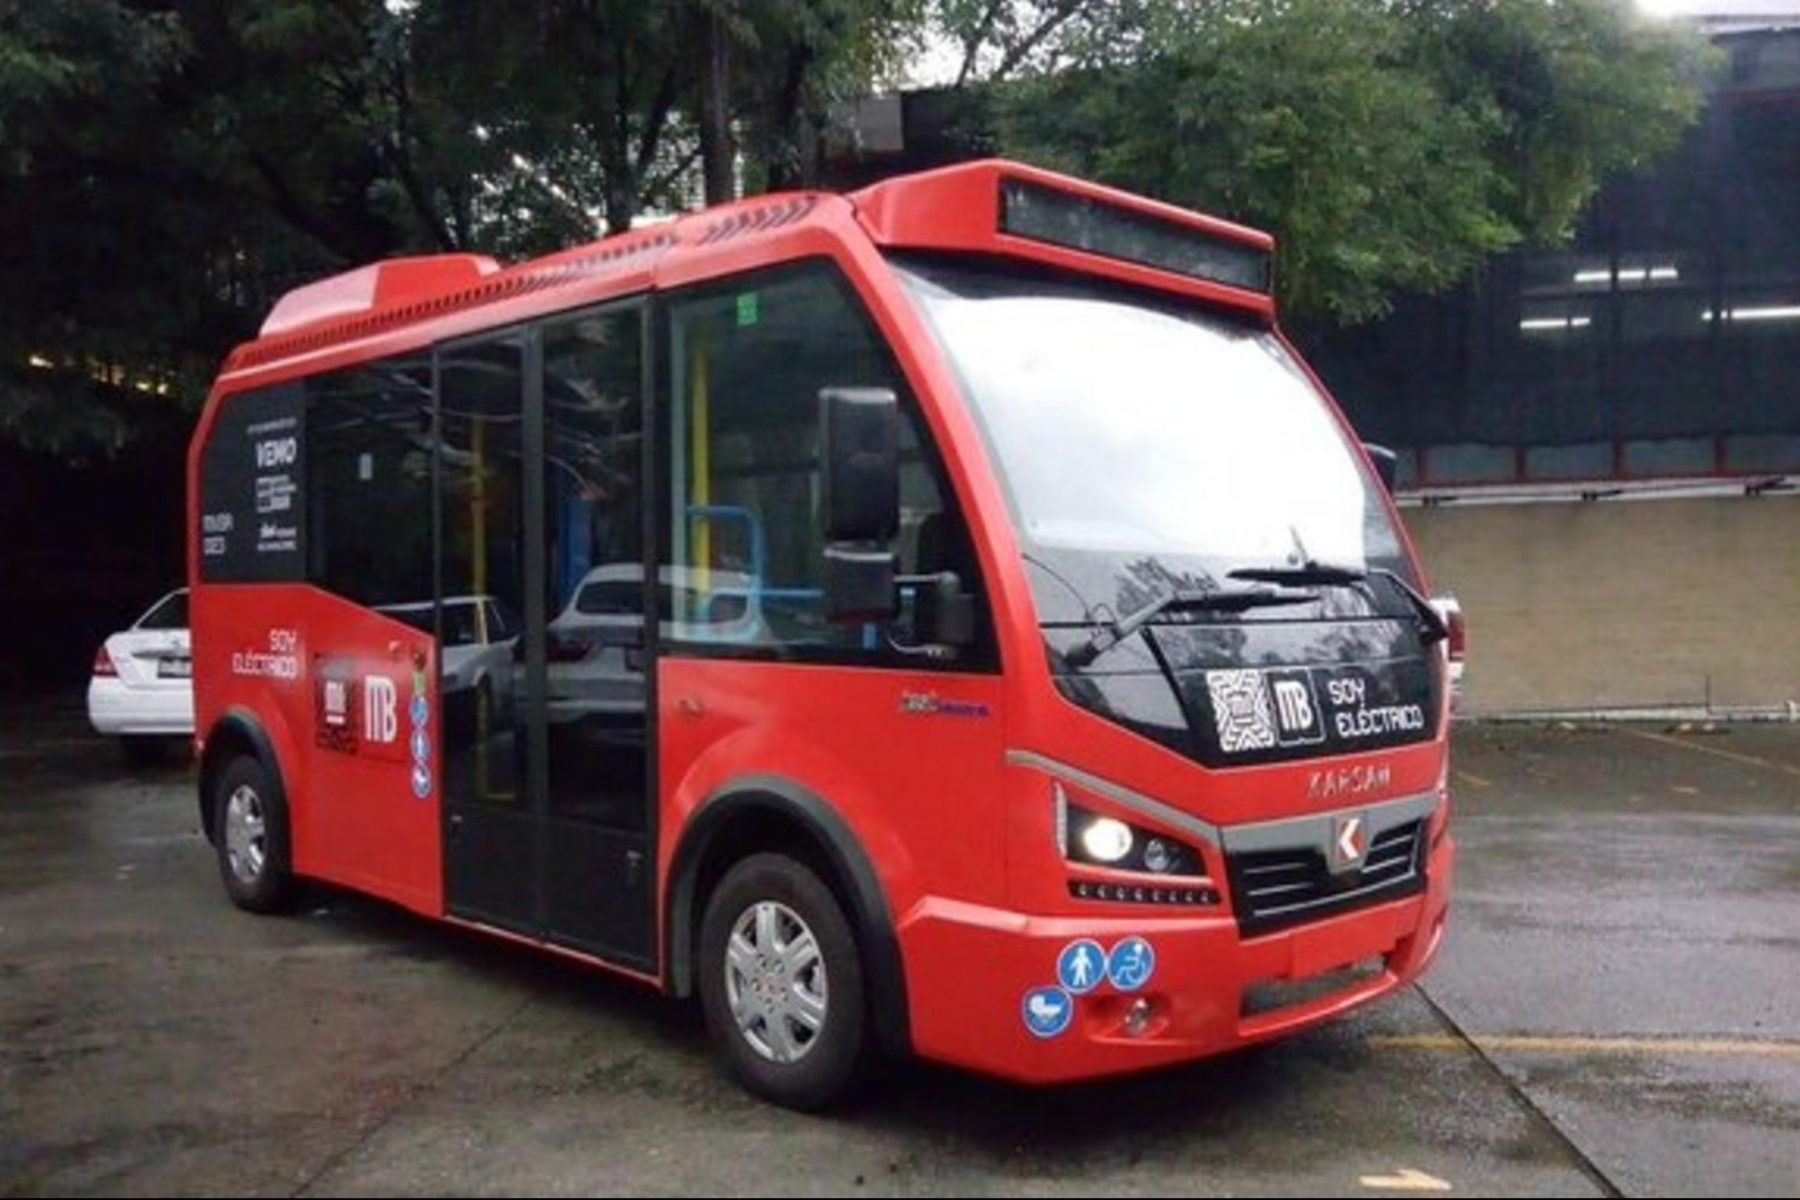 what-function-will-the-new-'metrobus-baby'-have?-in-addition-to-inspiring-memes-and-tenderness,-the-cdmx-'metrobusito'-has-a-purpose